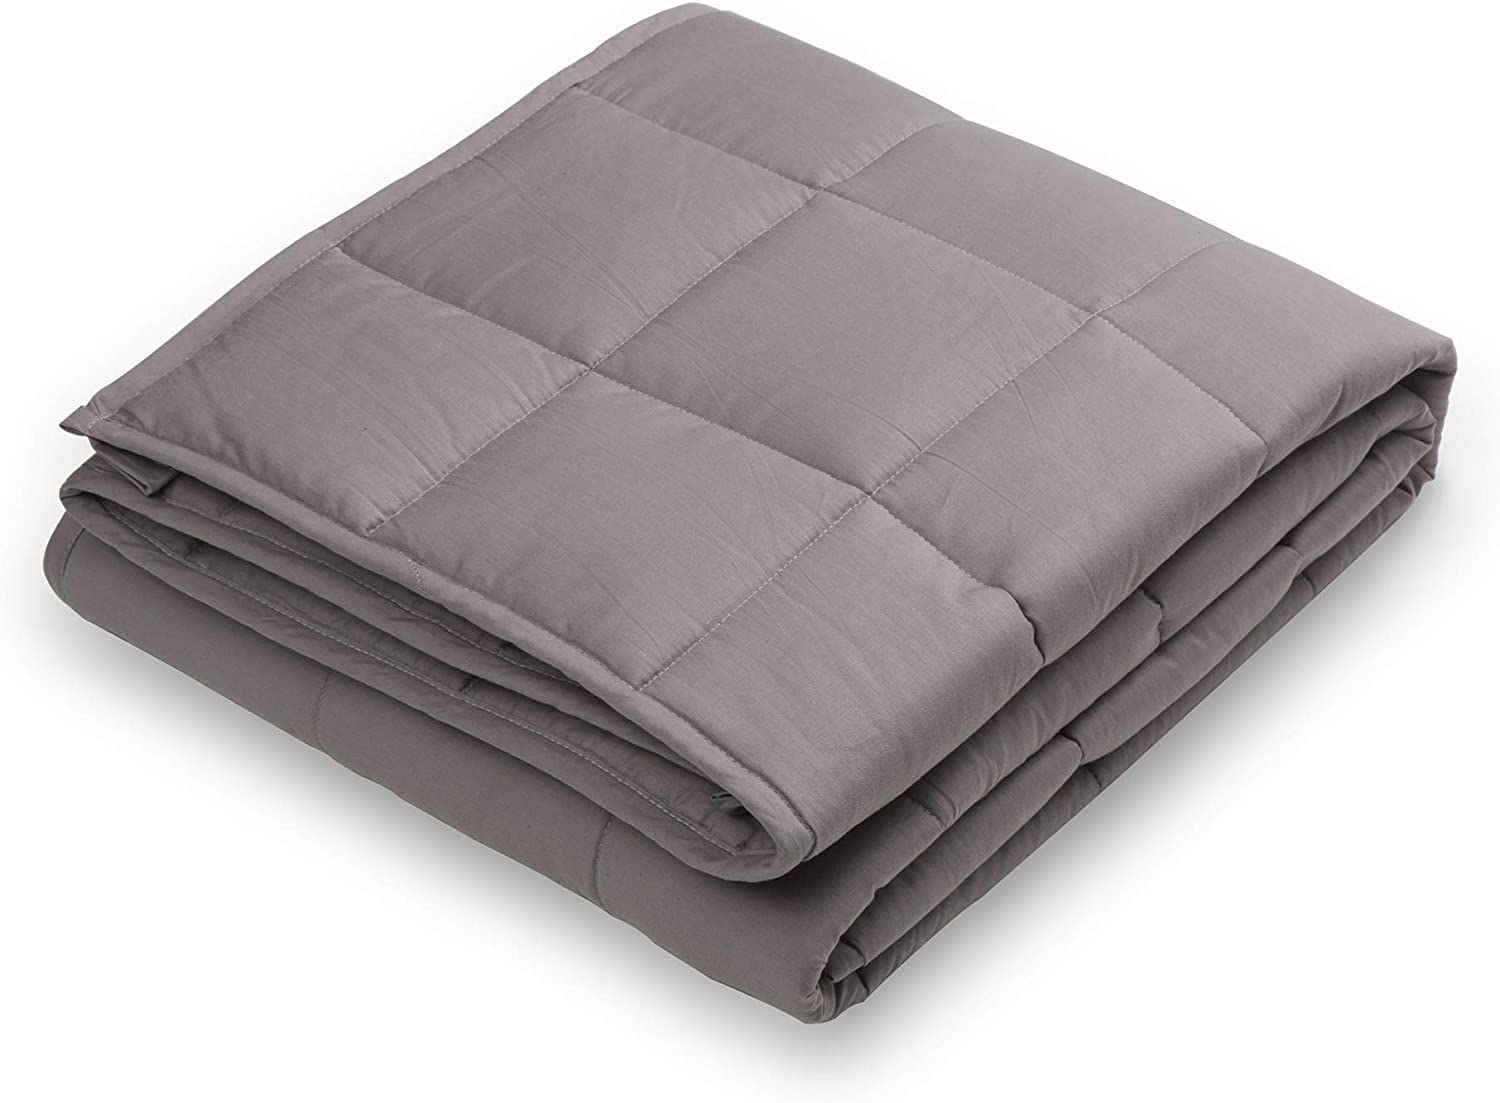 glitzhome 100% Cotton Challenge the Limited price sale lowest price of Japan Weighted Blankets 12Lbs Quilts 72